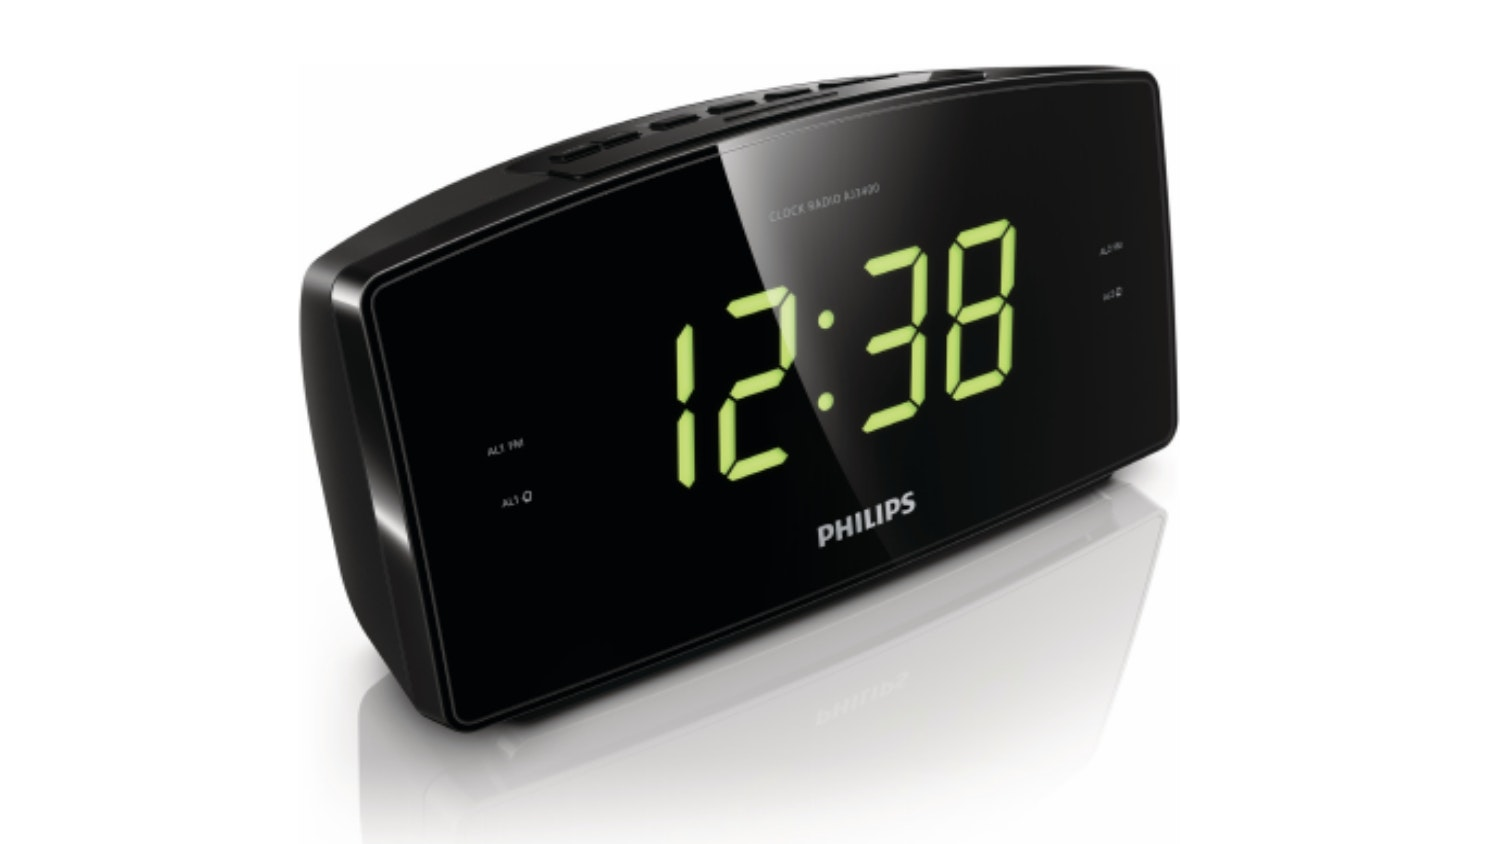 Philips Aj3400 Clock Radio Black Harvey Norman Singapore